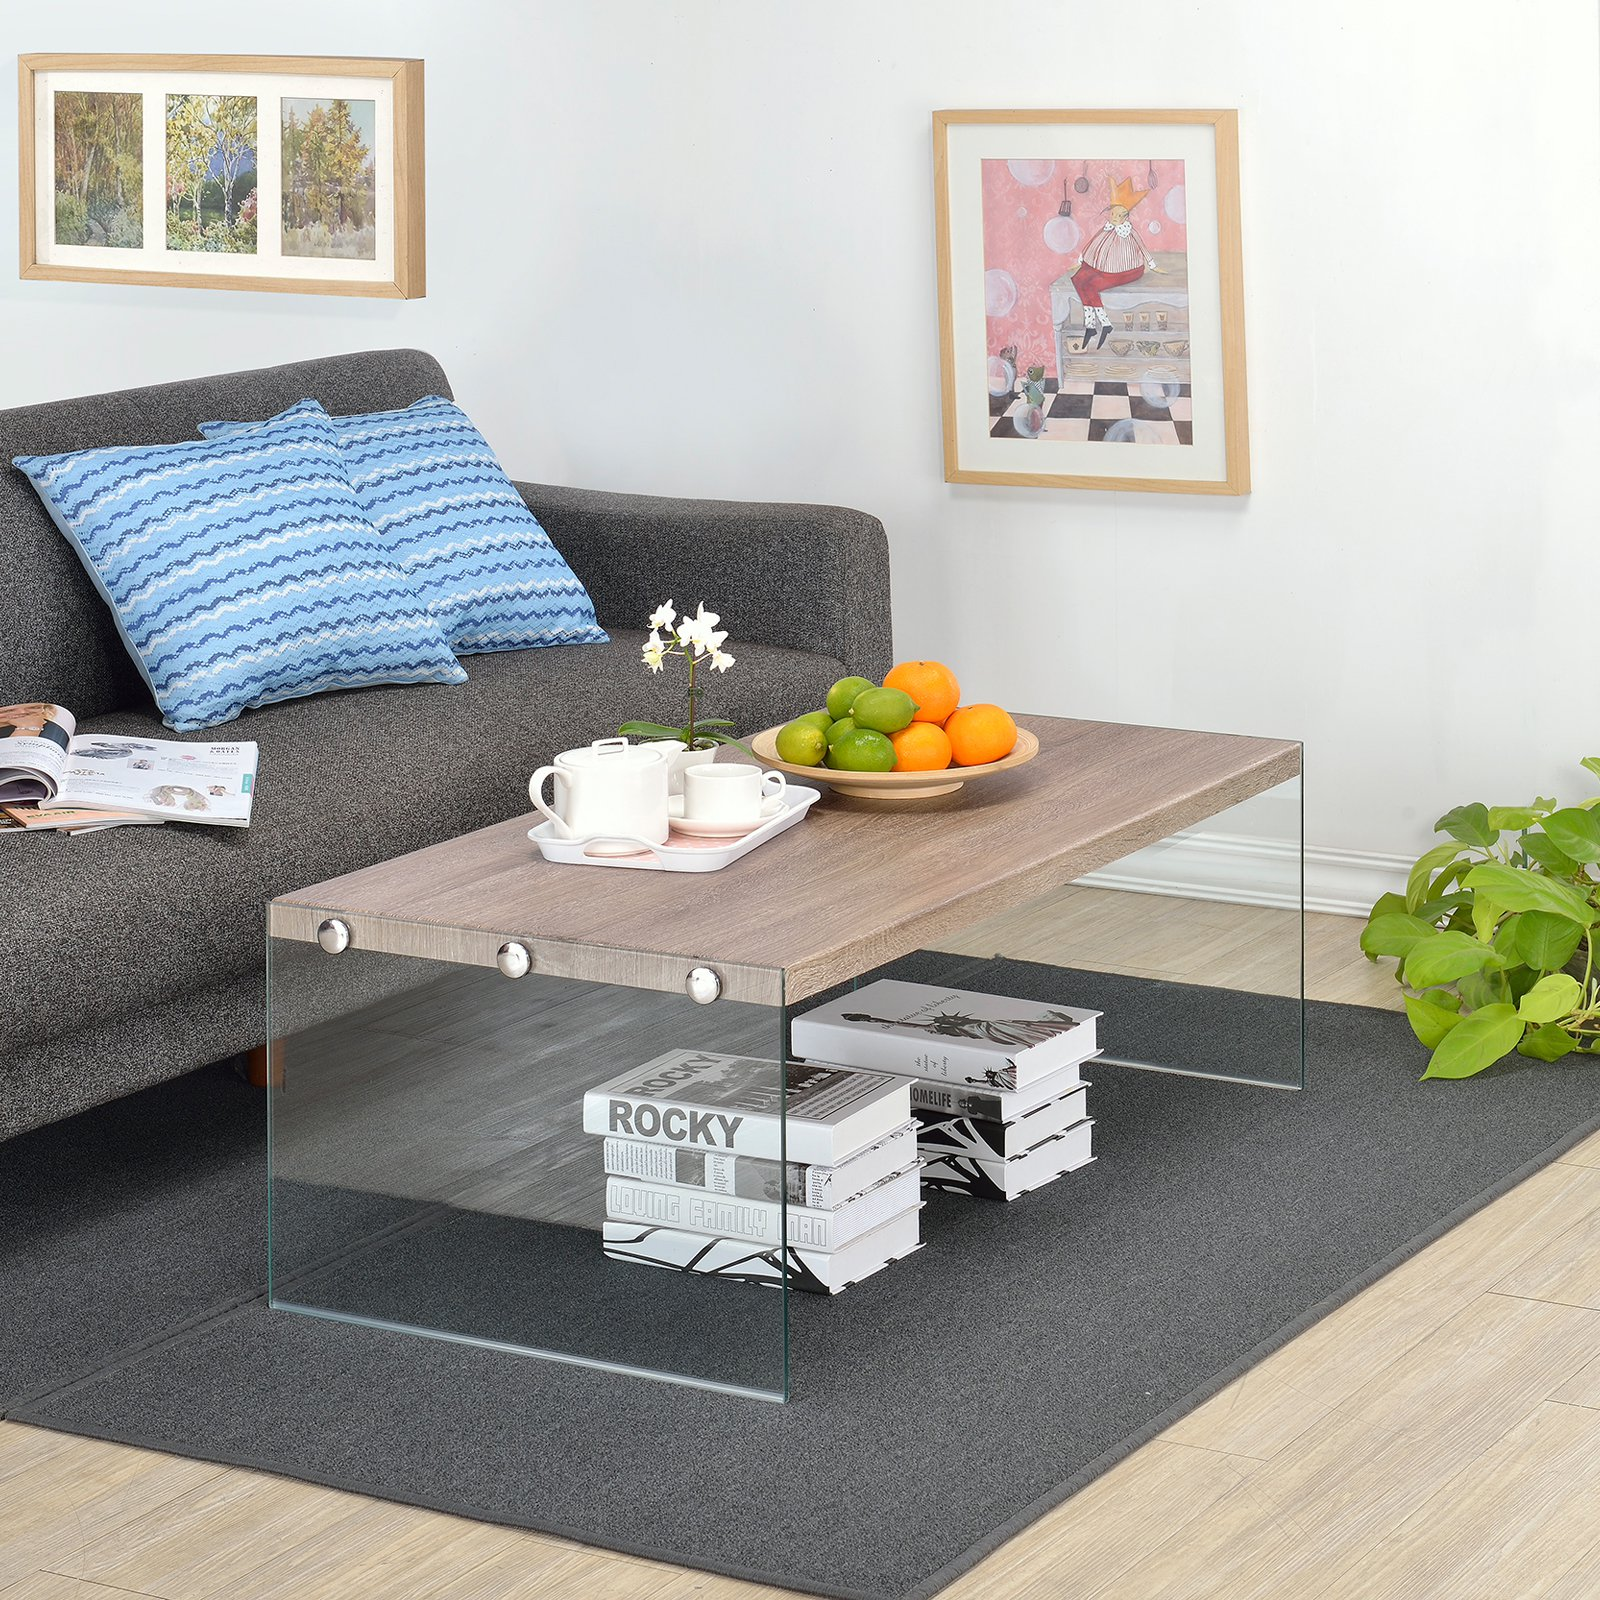 Fox Hill Trading Millenial Upton Wood and Glass Coffee Table